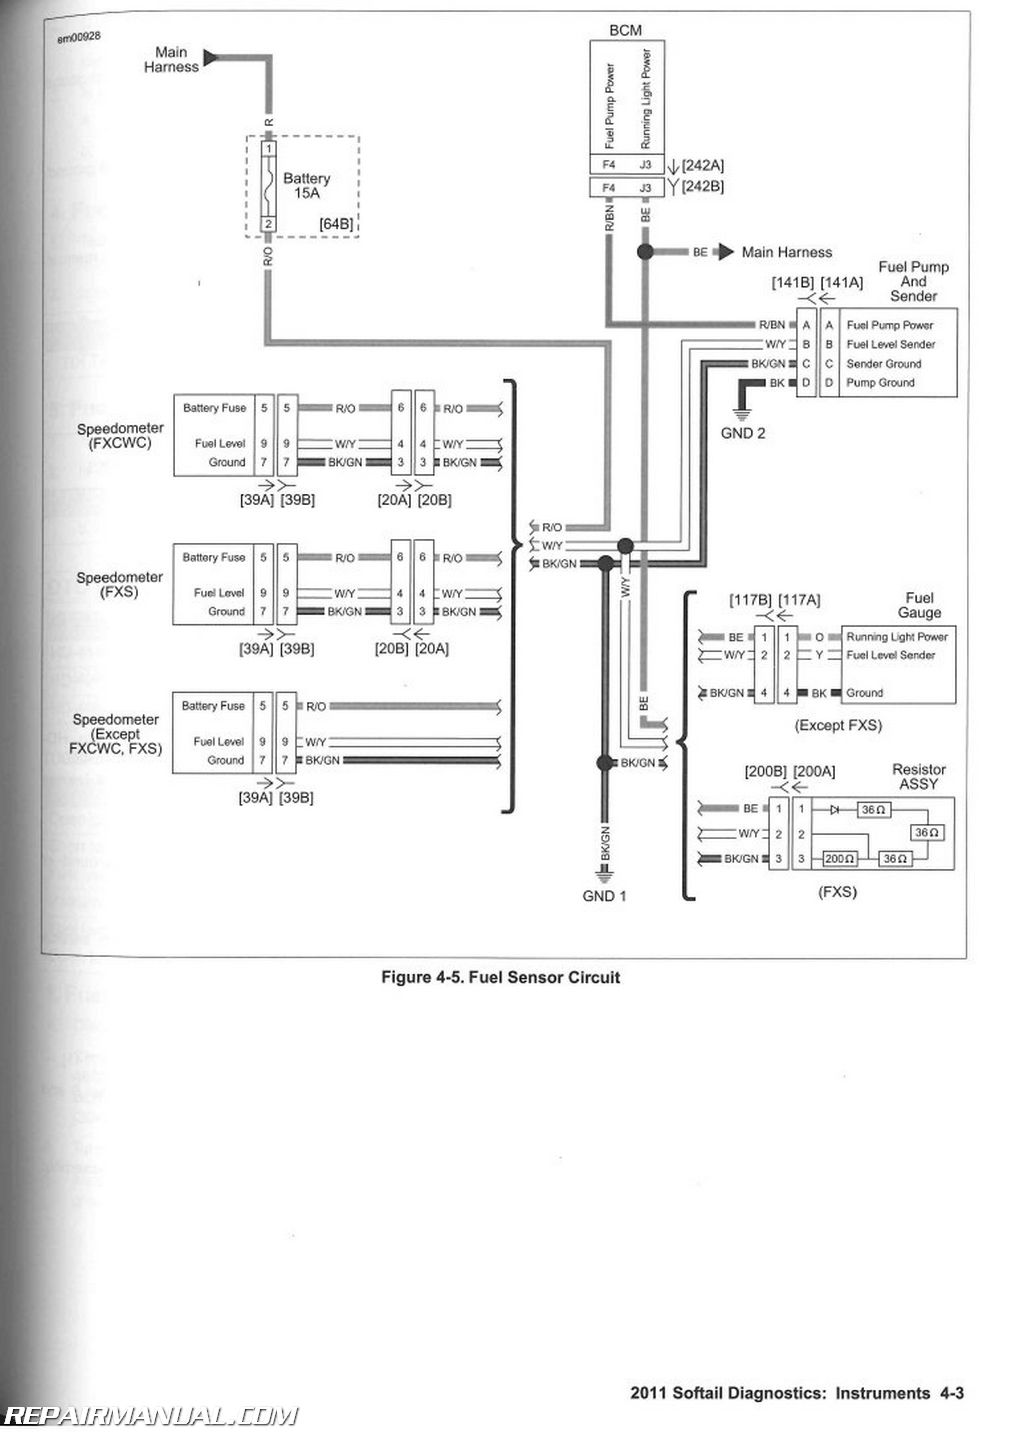 99 Fatboy Wiring Diagram Opinions About 2010 1988 Harley Davidson Softail Schematic Rh Theodocle Fion Com